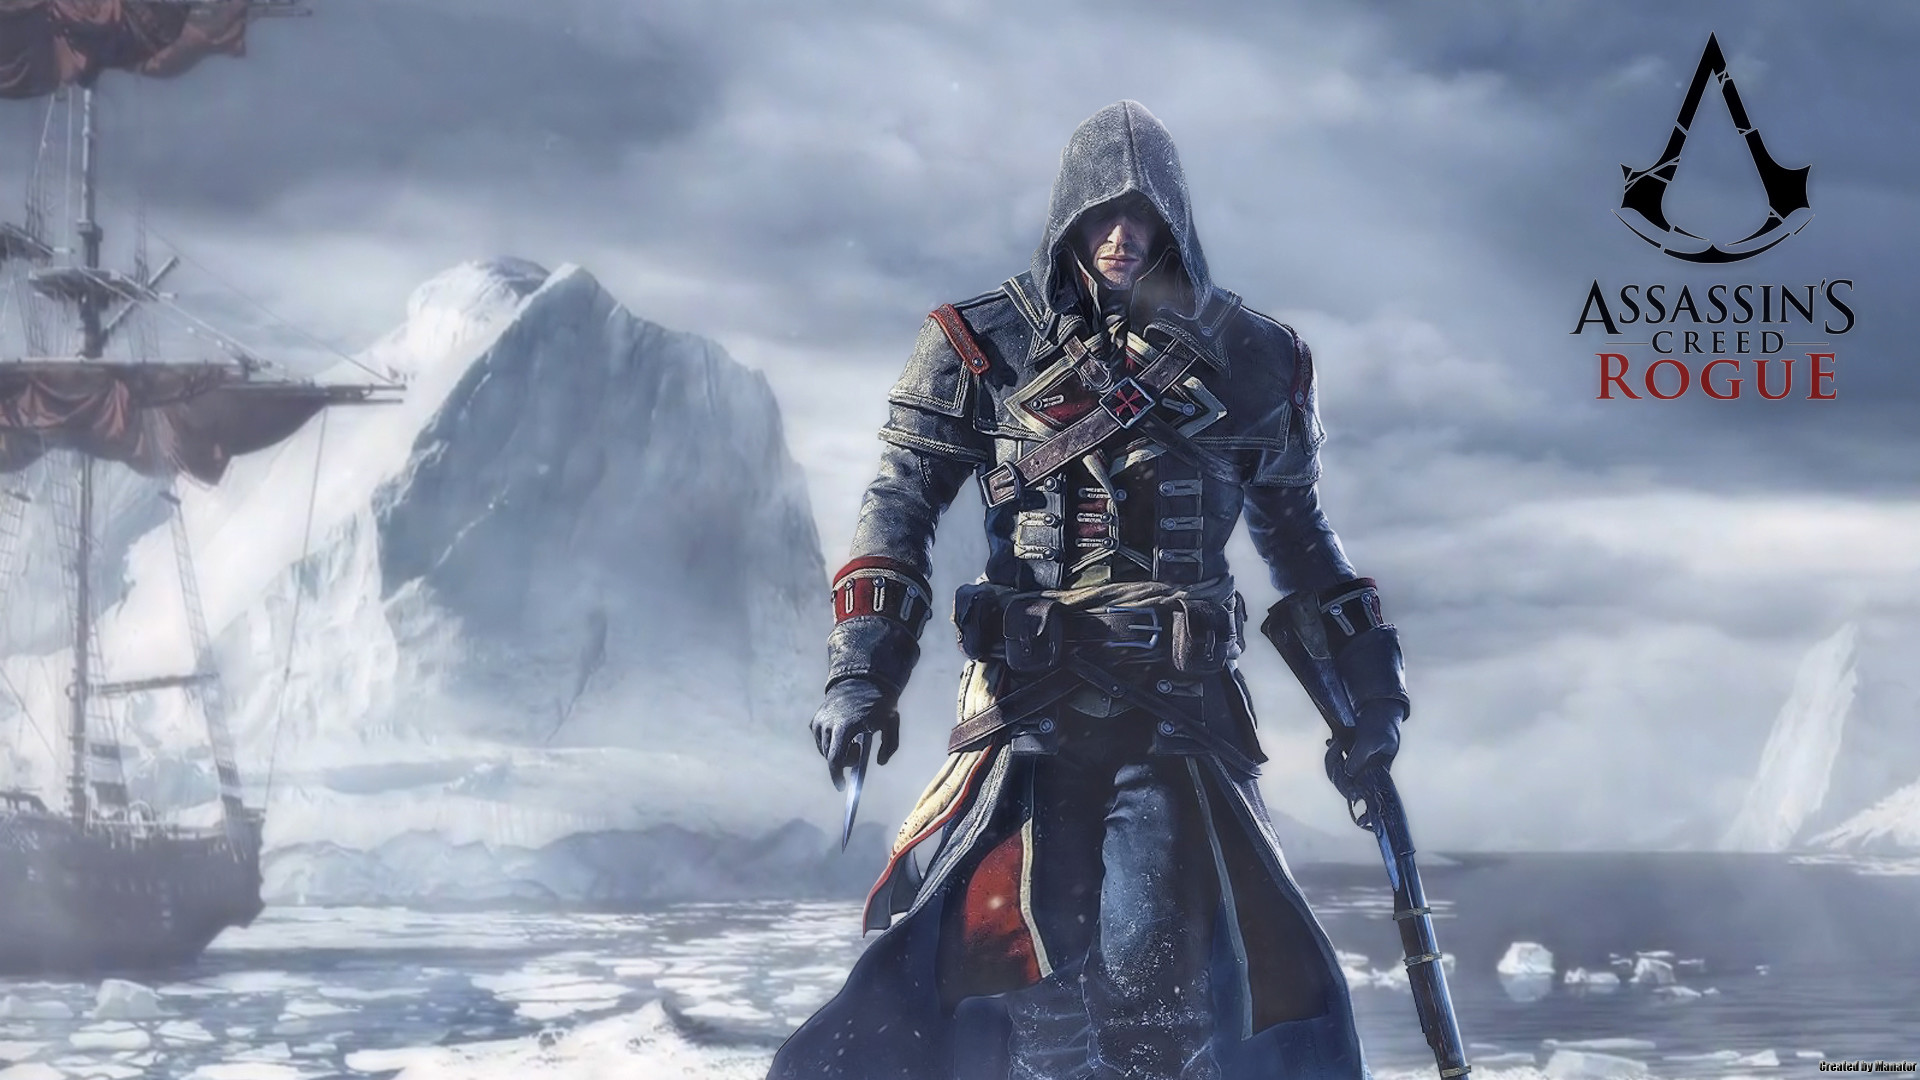 ASSASSIN'S CREED ROGUE PREVIEW